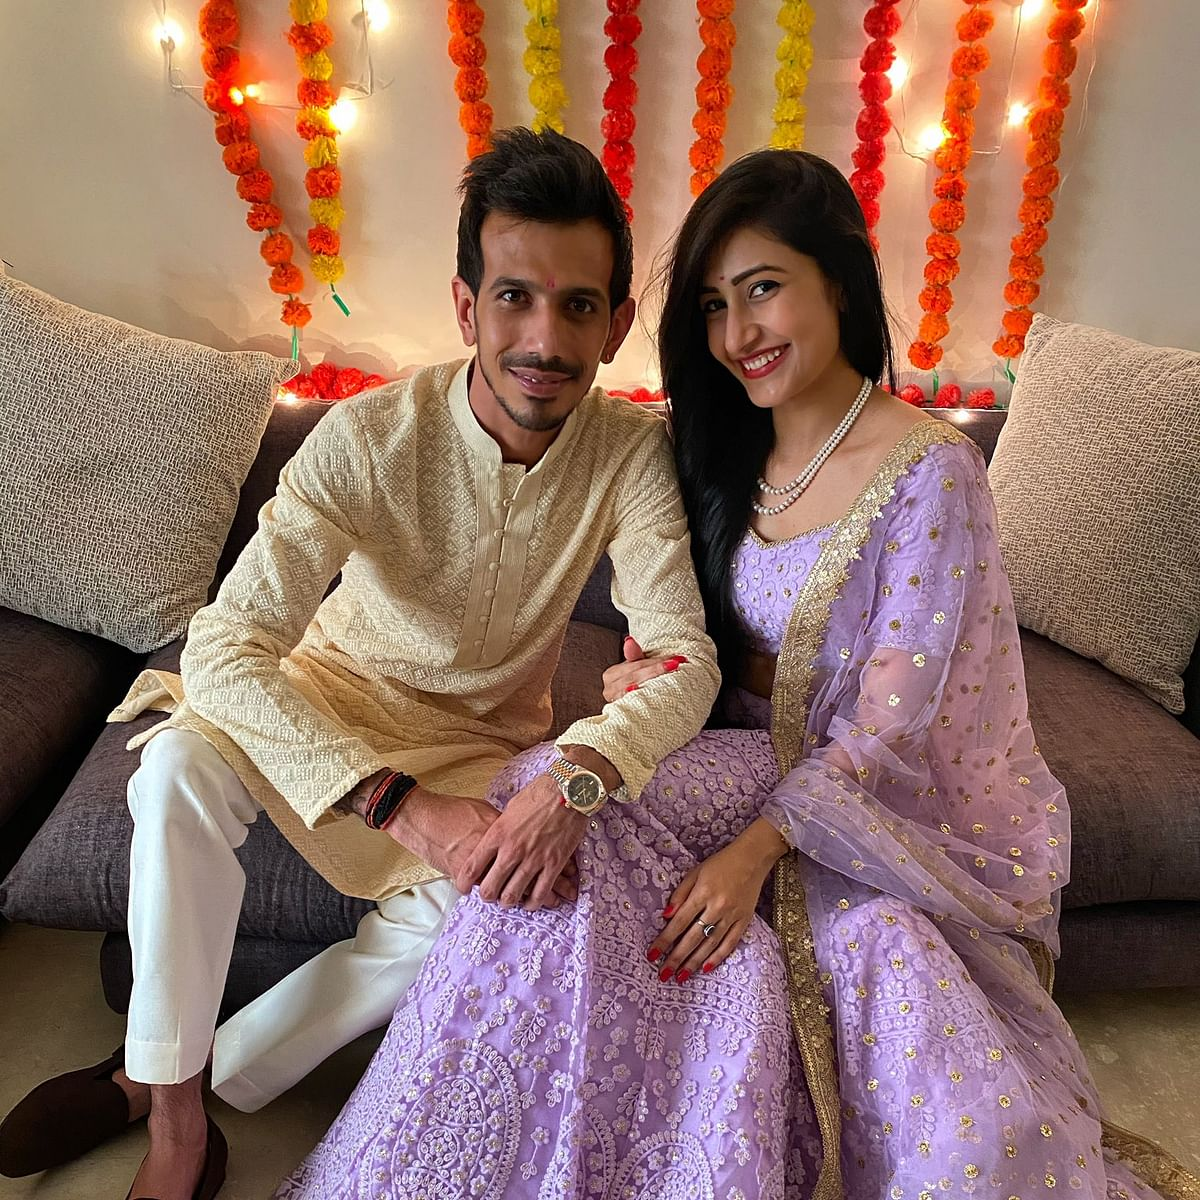 'We said yes': Yuzvendra Chahal shares photos from roka ceremony with Dhanashree Verma